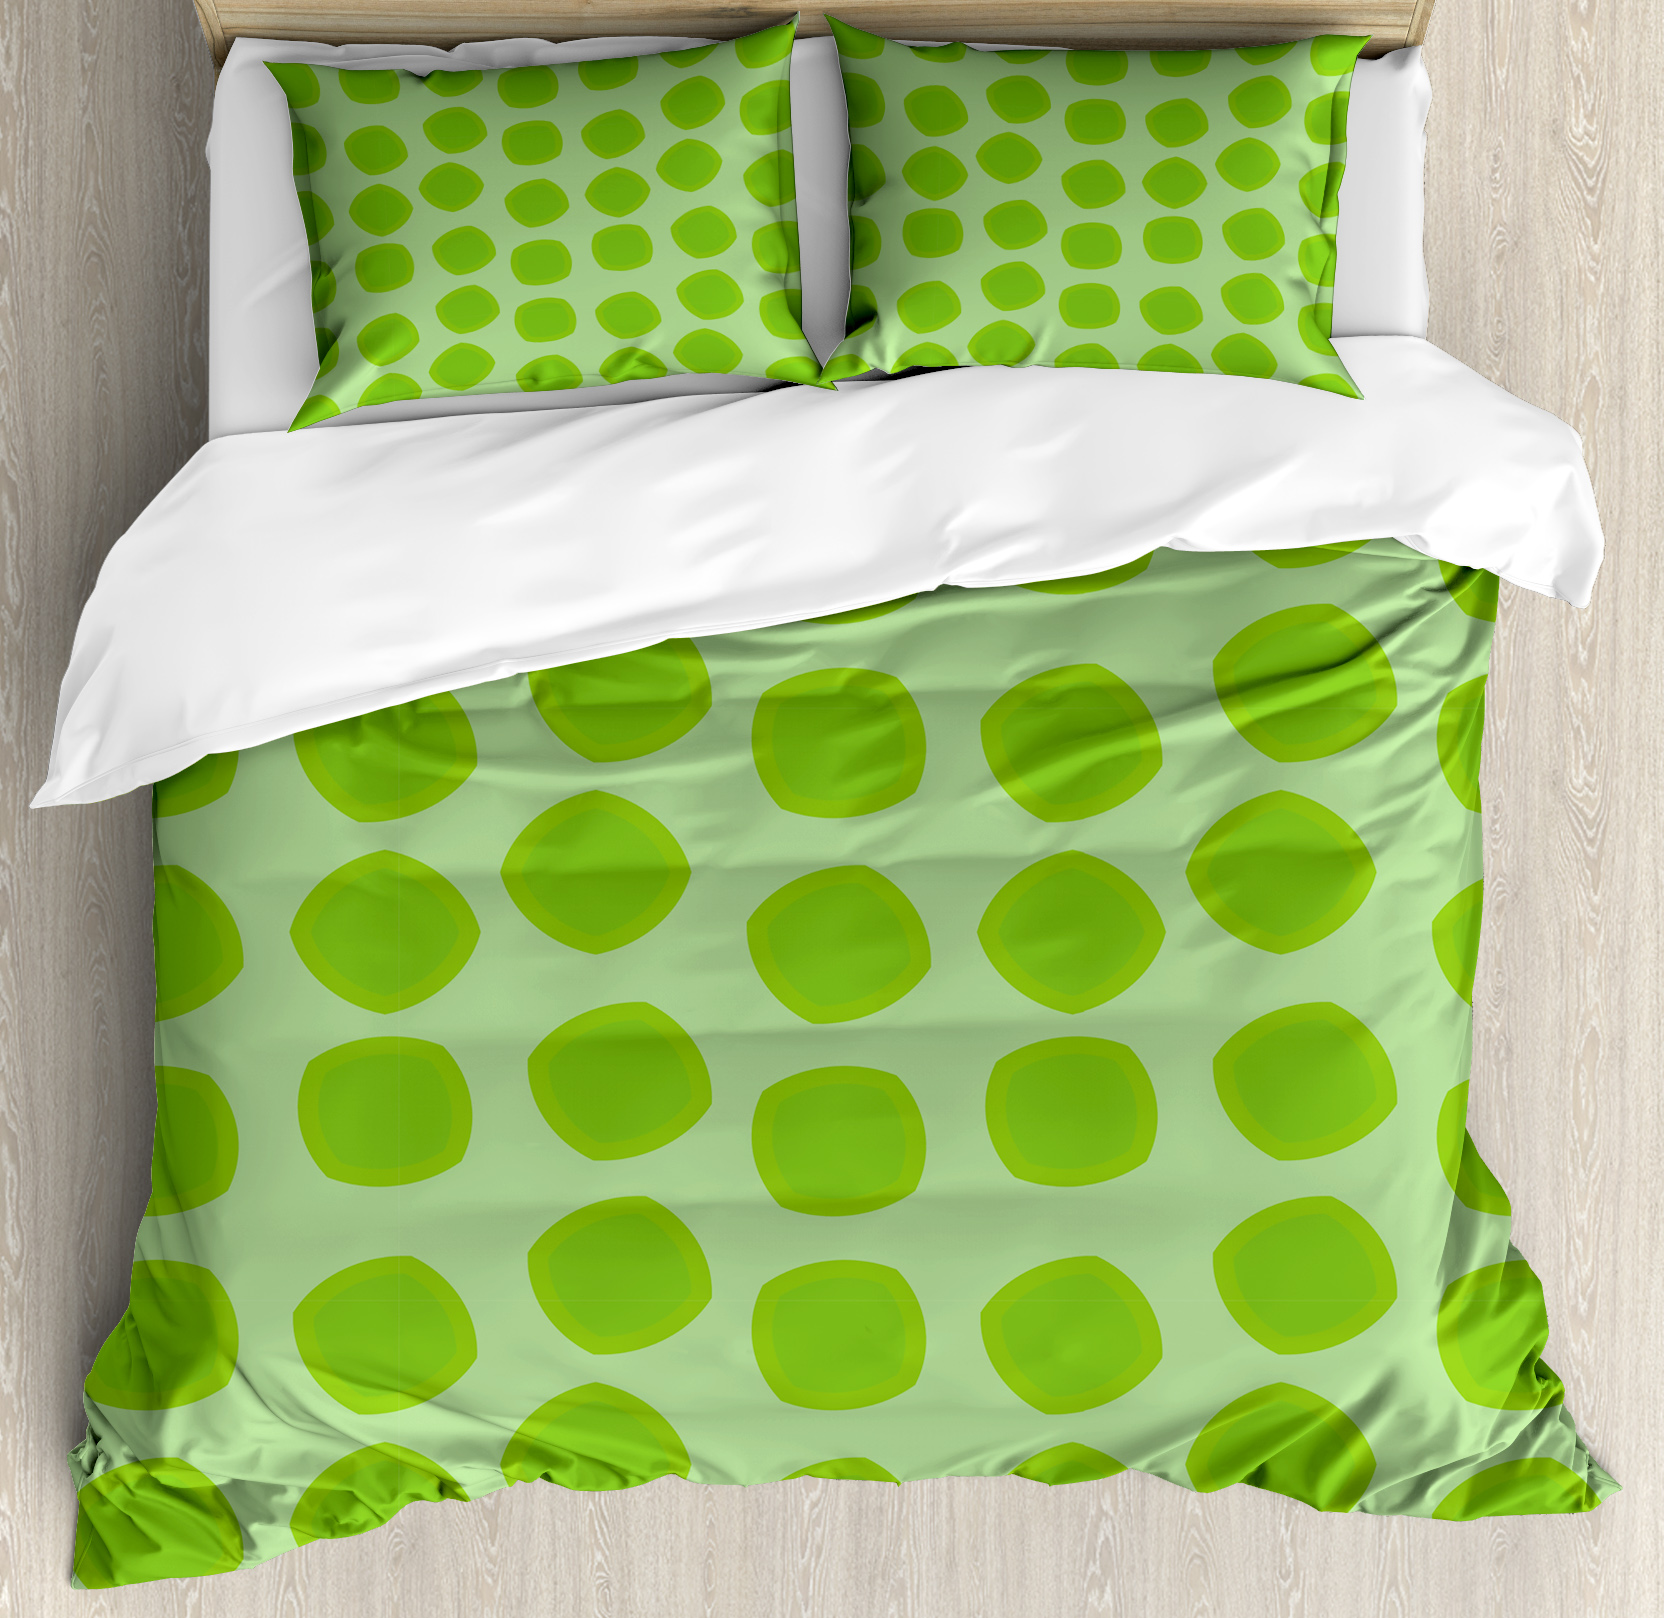 Lime Green Duvet Cover Set, Simplistic Formless Geometric Shapes in Different Shades Kids Nursery Theme, Decorative Bedding Set with Pillow Shams, Almond Green, by Ambesonne